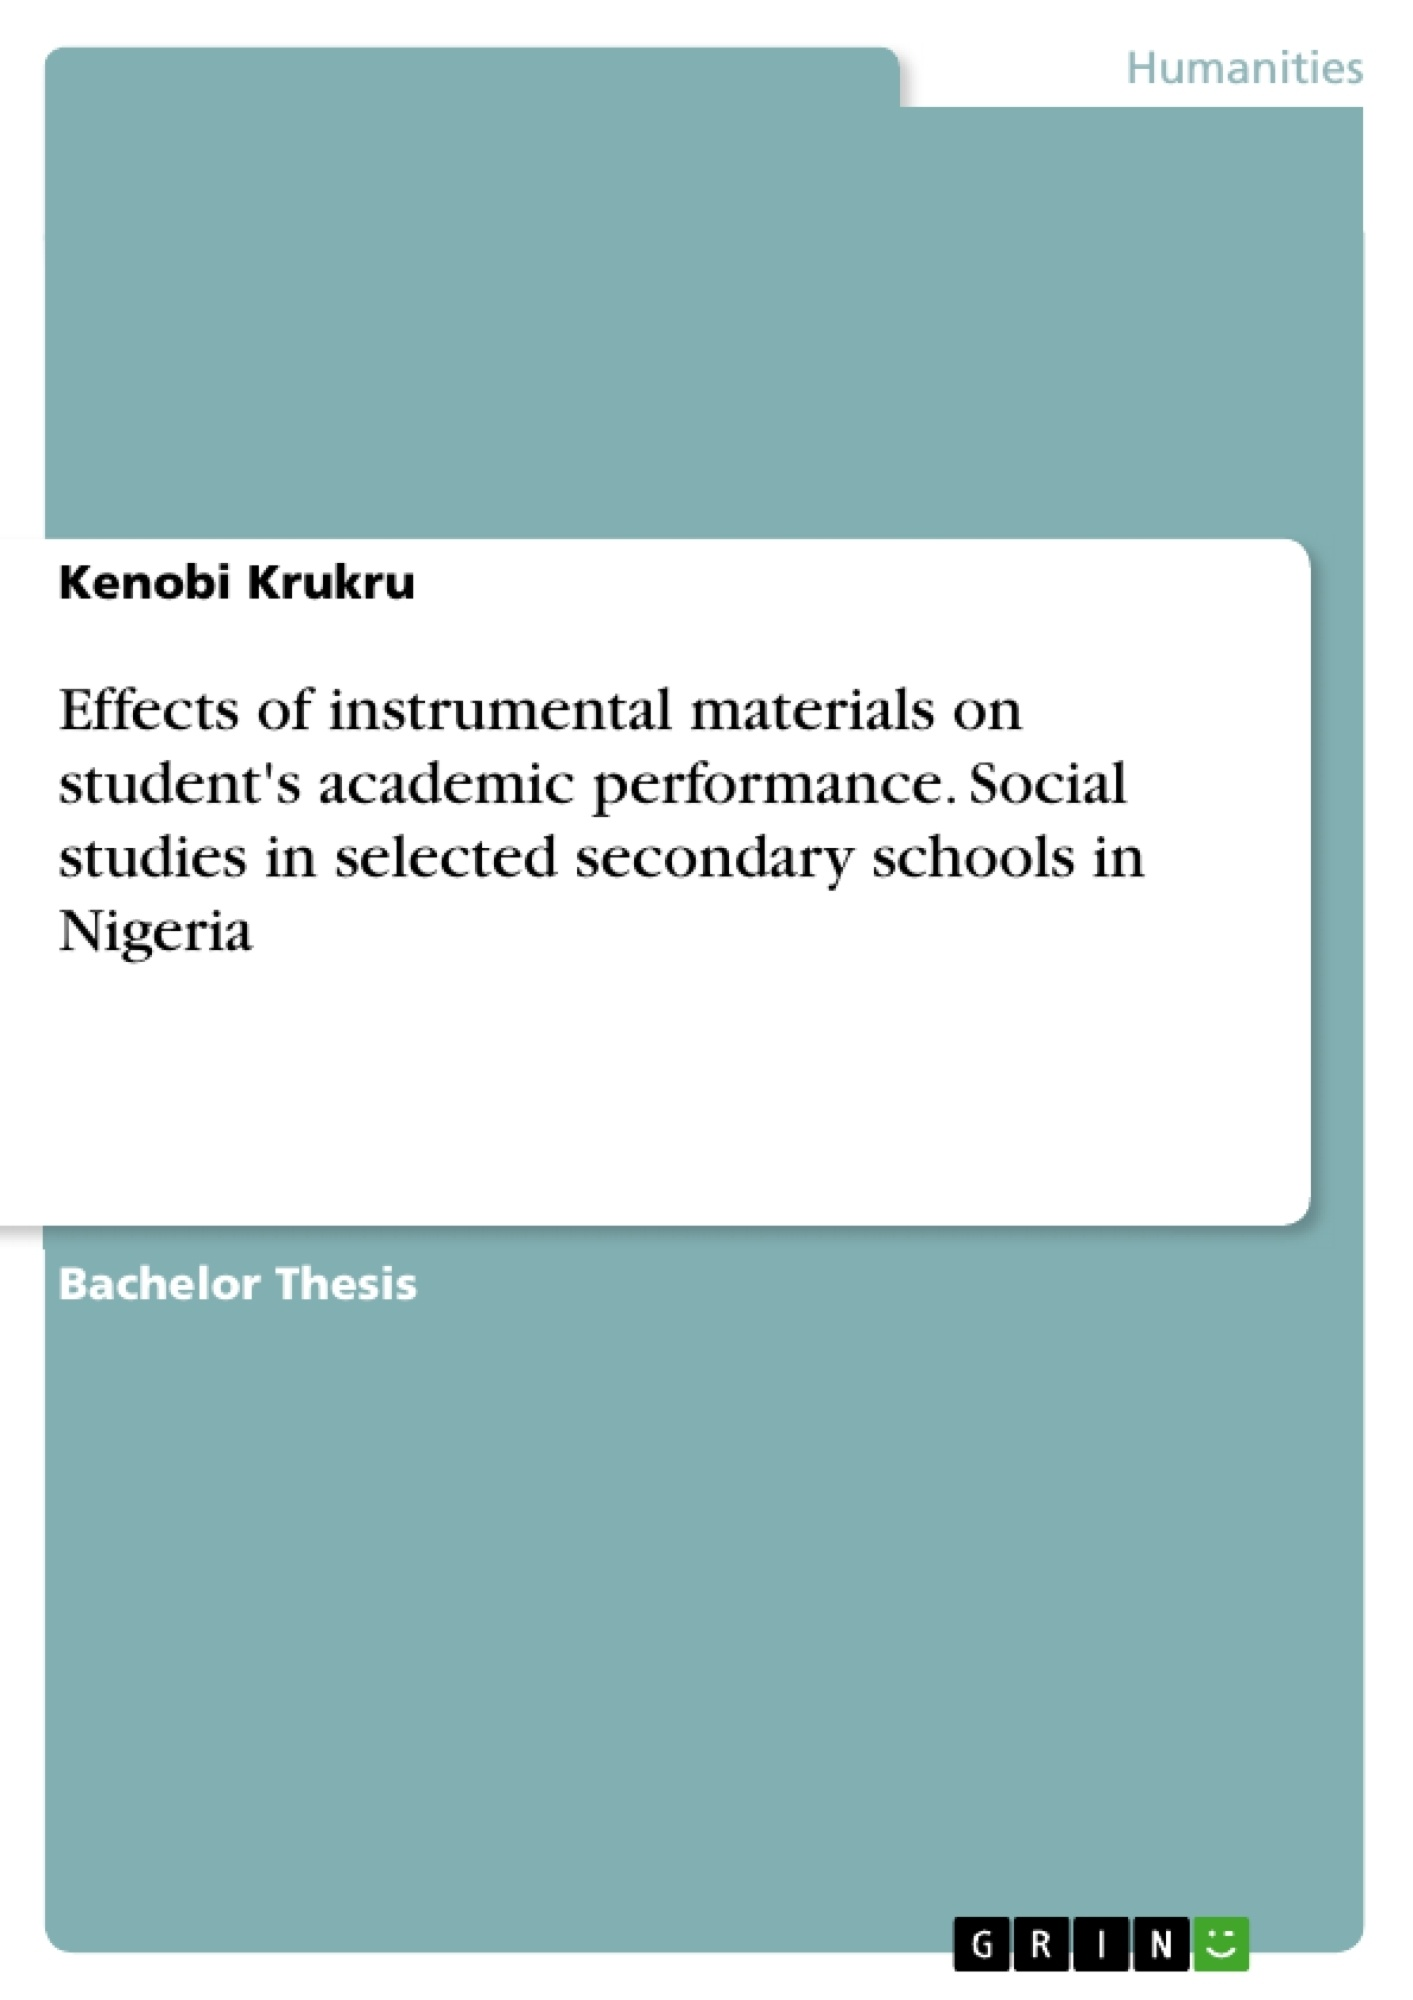 GRIN - Effects of instrumental materials on student's academic performance   Social studies in selected secondary schools in Nigeria